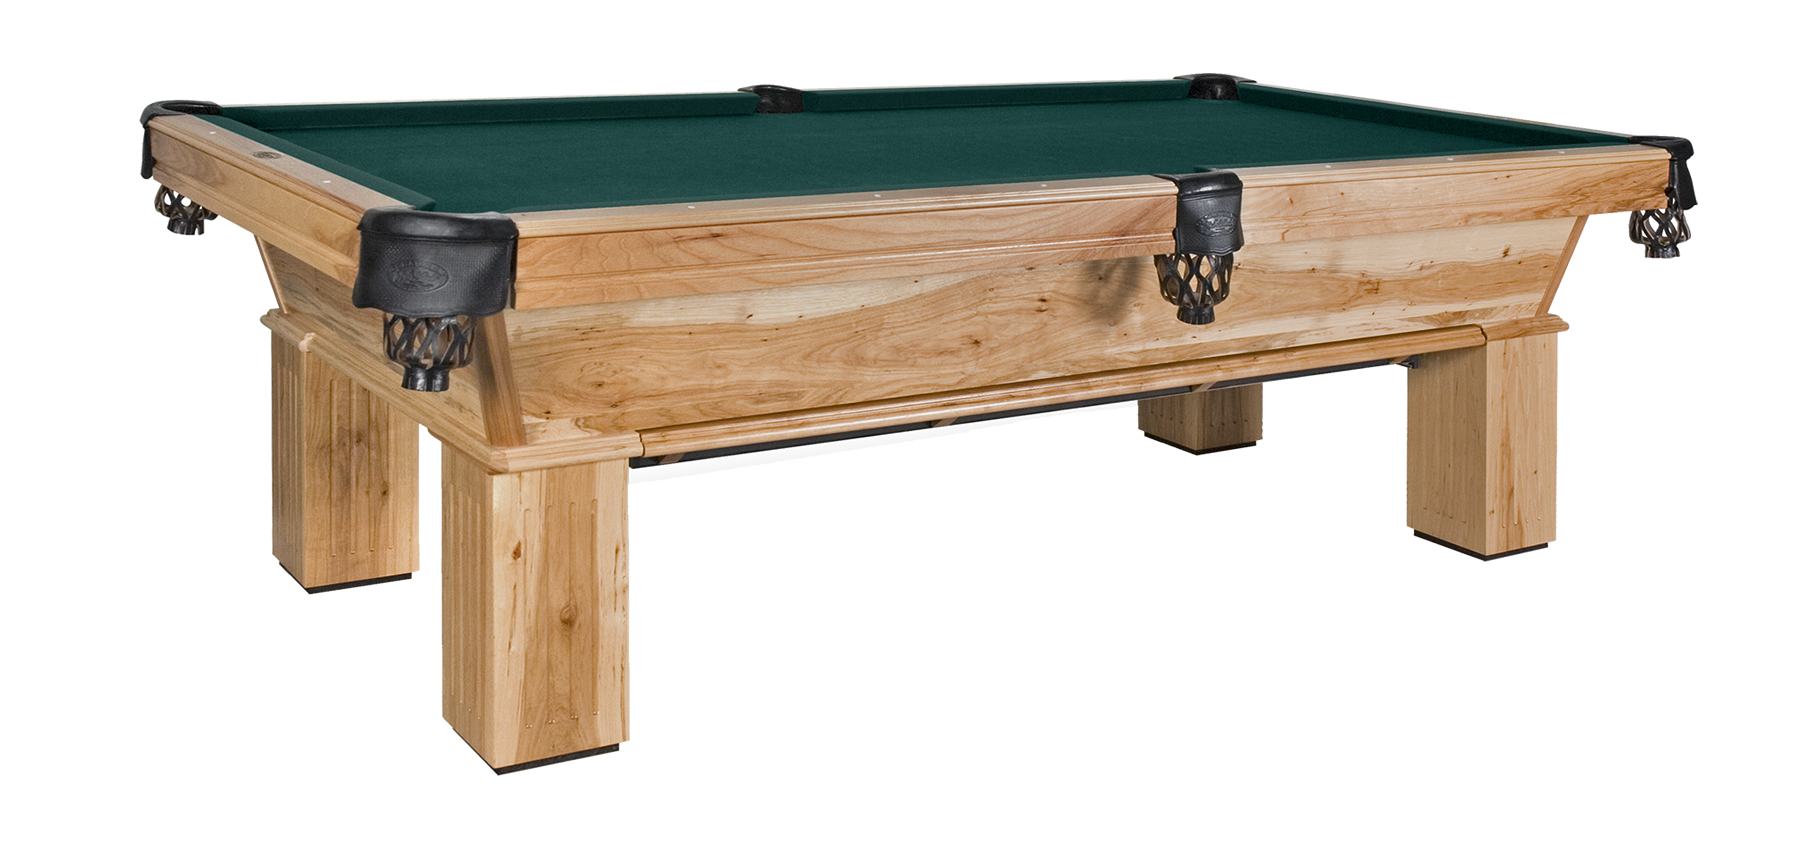 Olhausen Billiards Billiards And Barstools Gallery Pool Tables - Olhausen breckenridge pool table